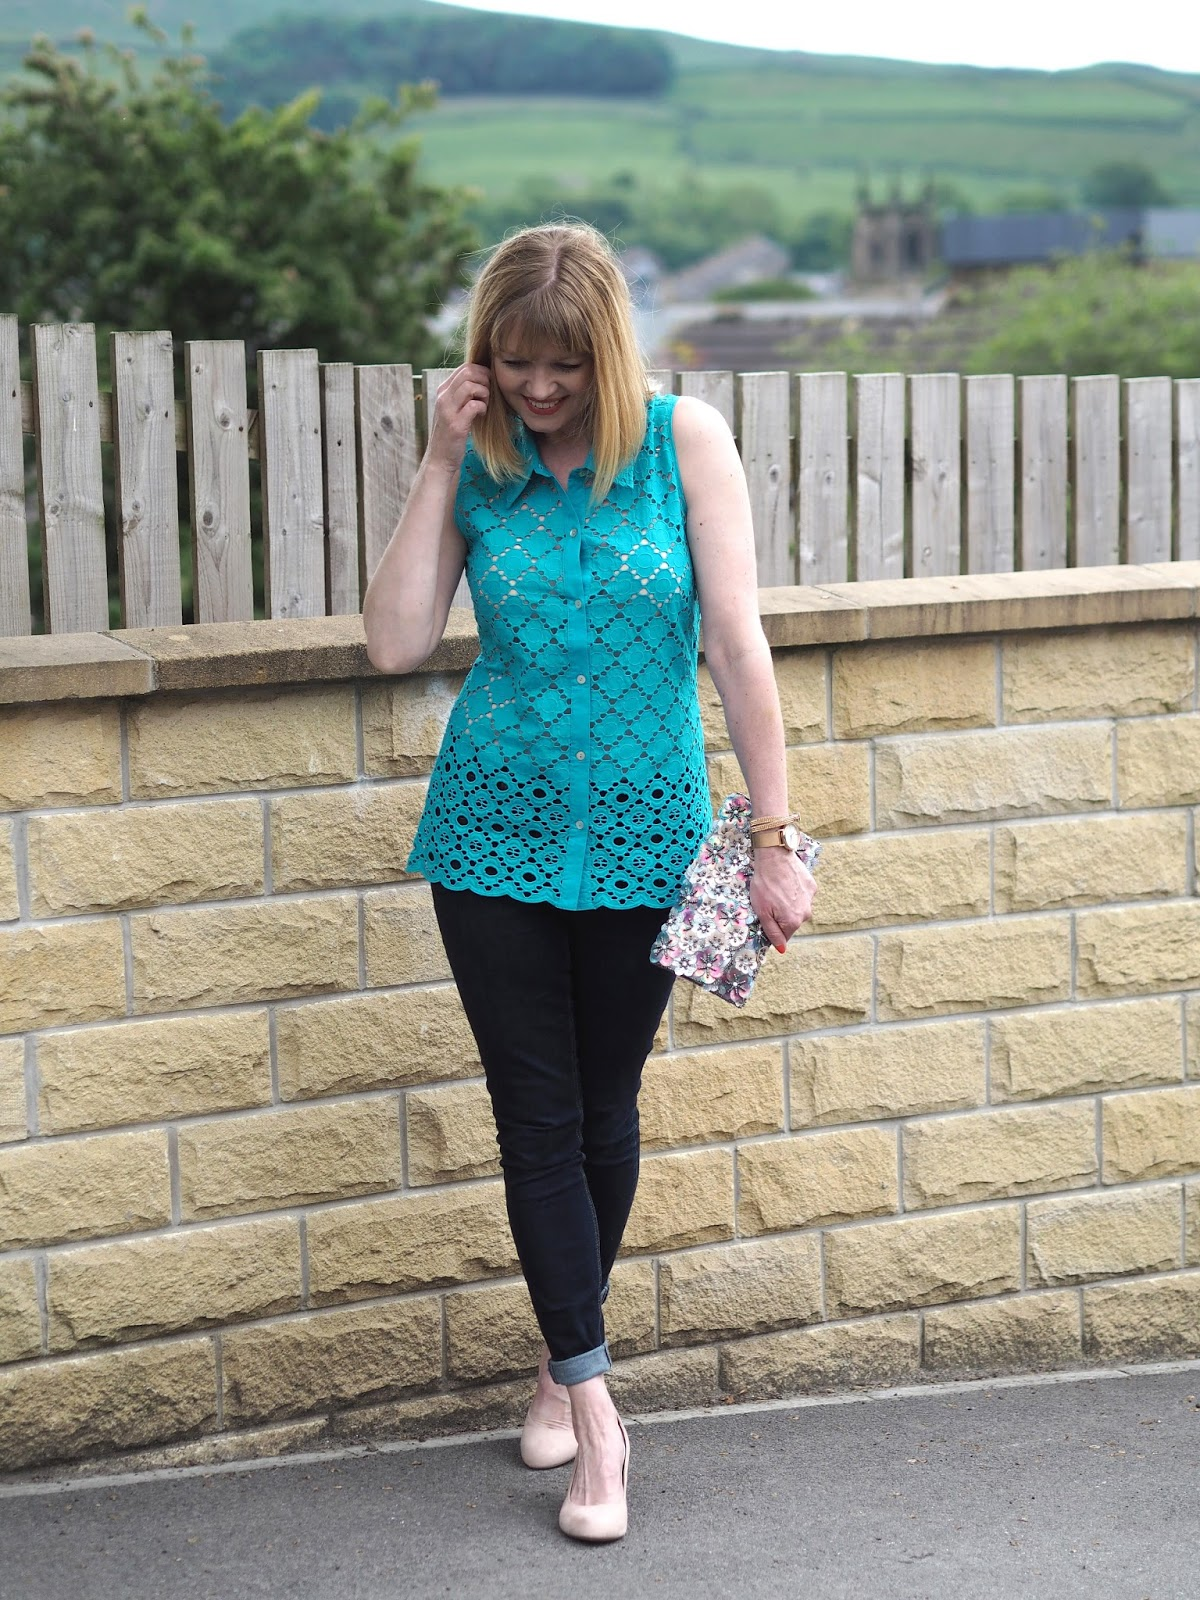 Turquoise broderie anglais top with skinny jeans and wedge shoes, floral clutch